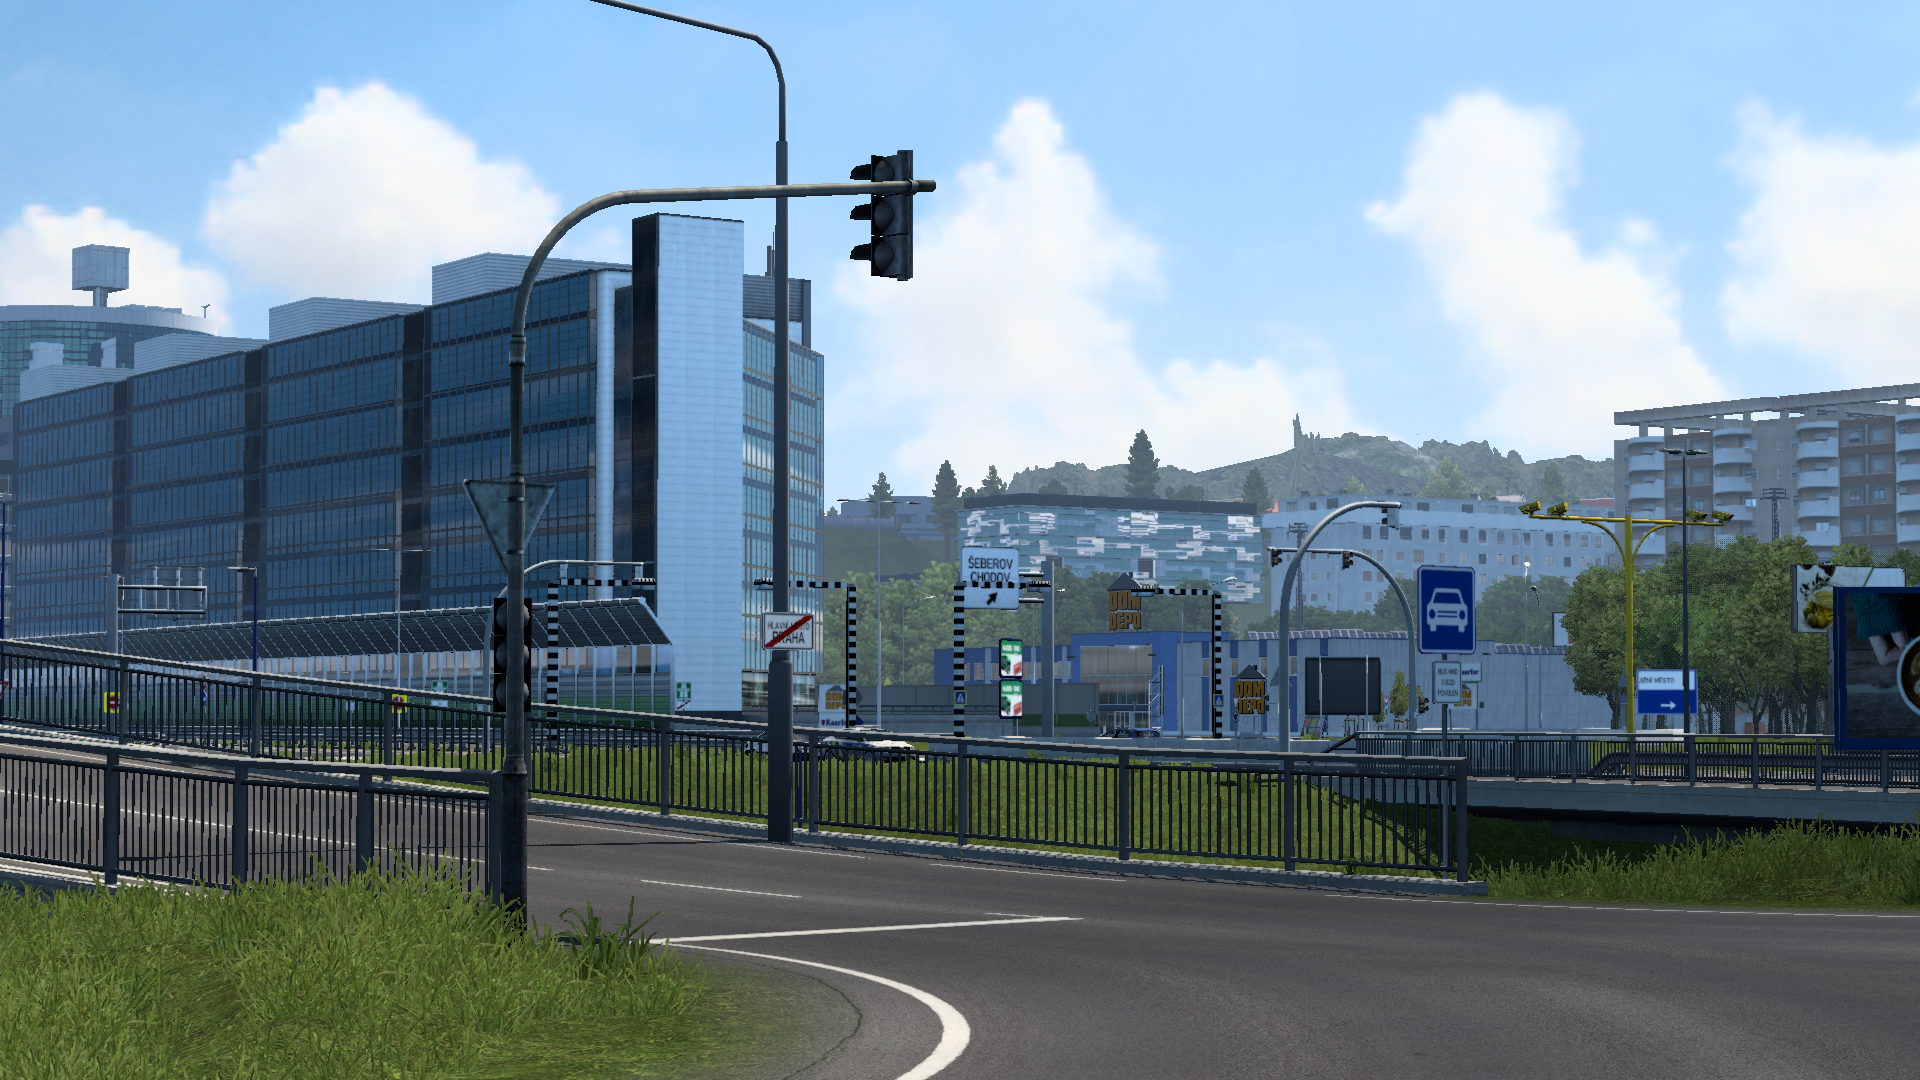 ets2_20210701_172123_00.png